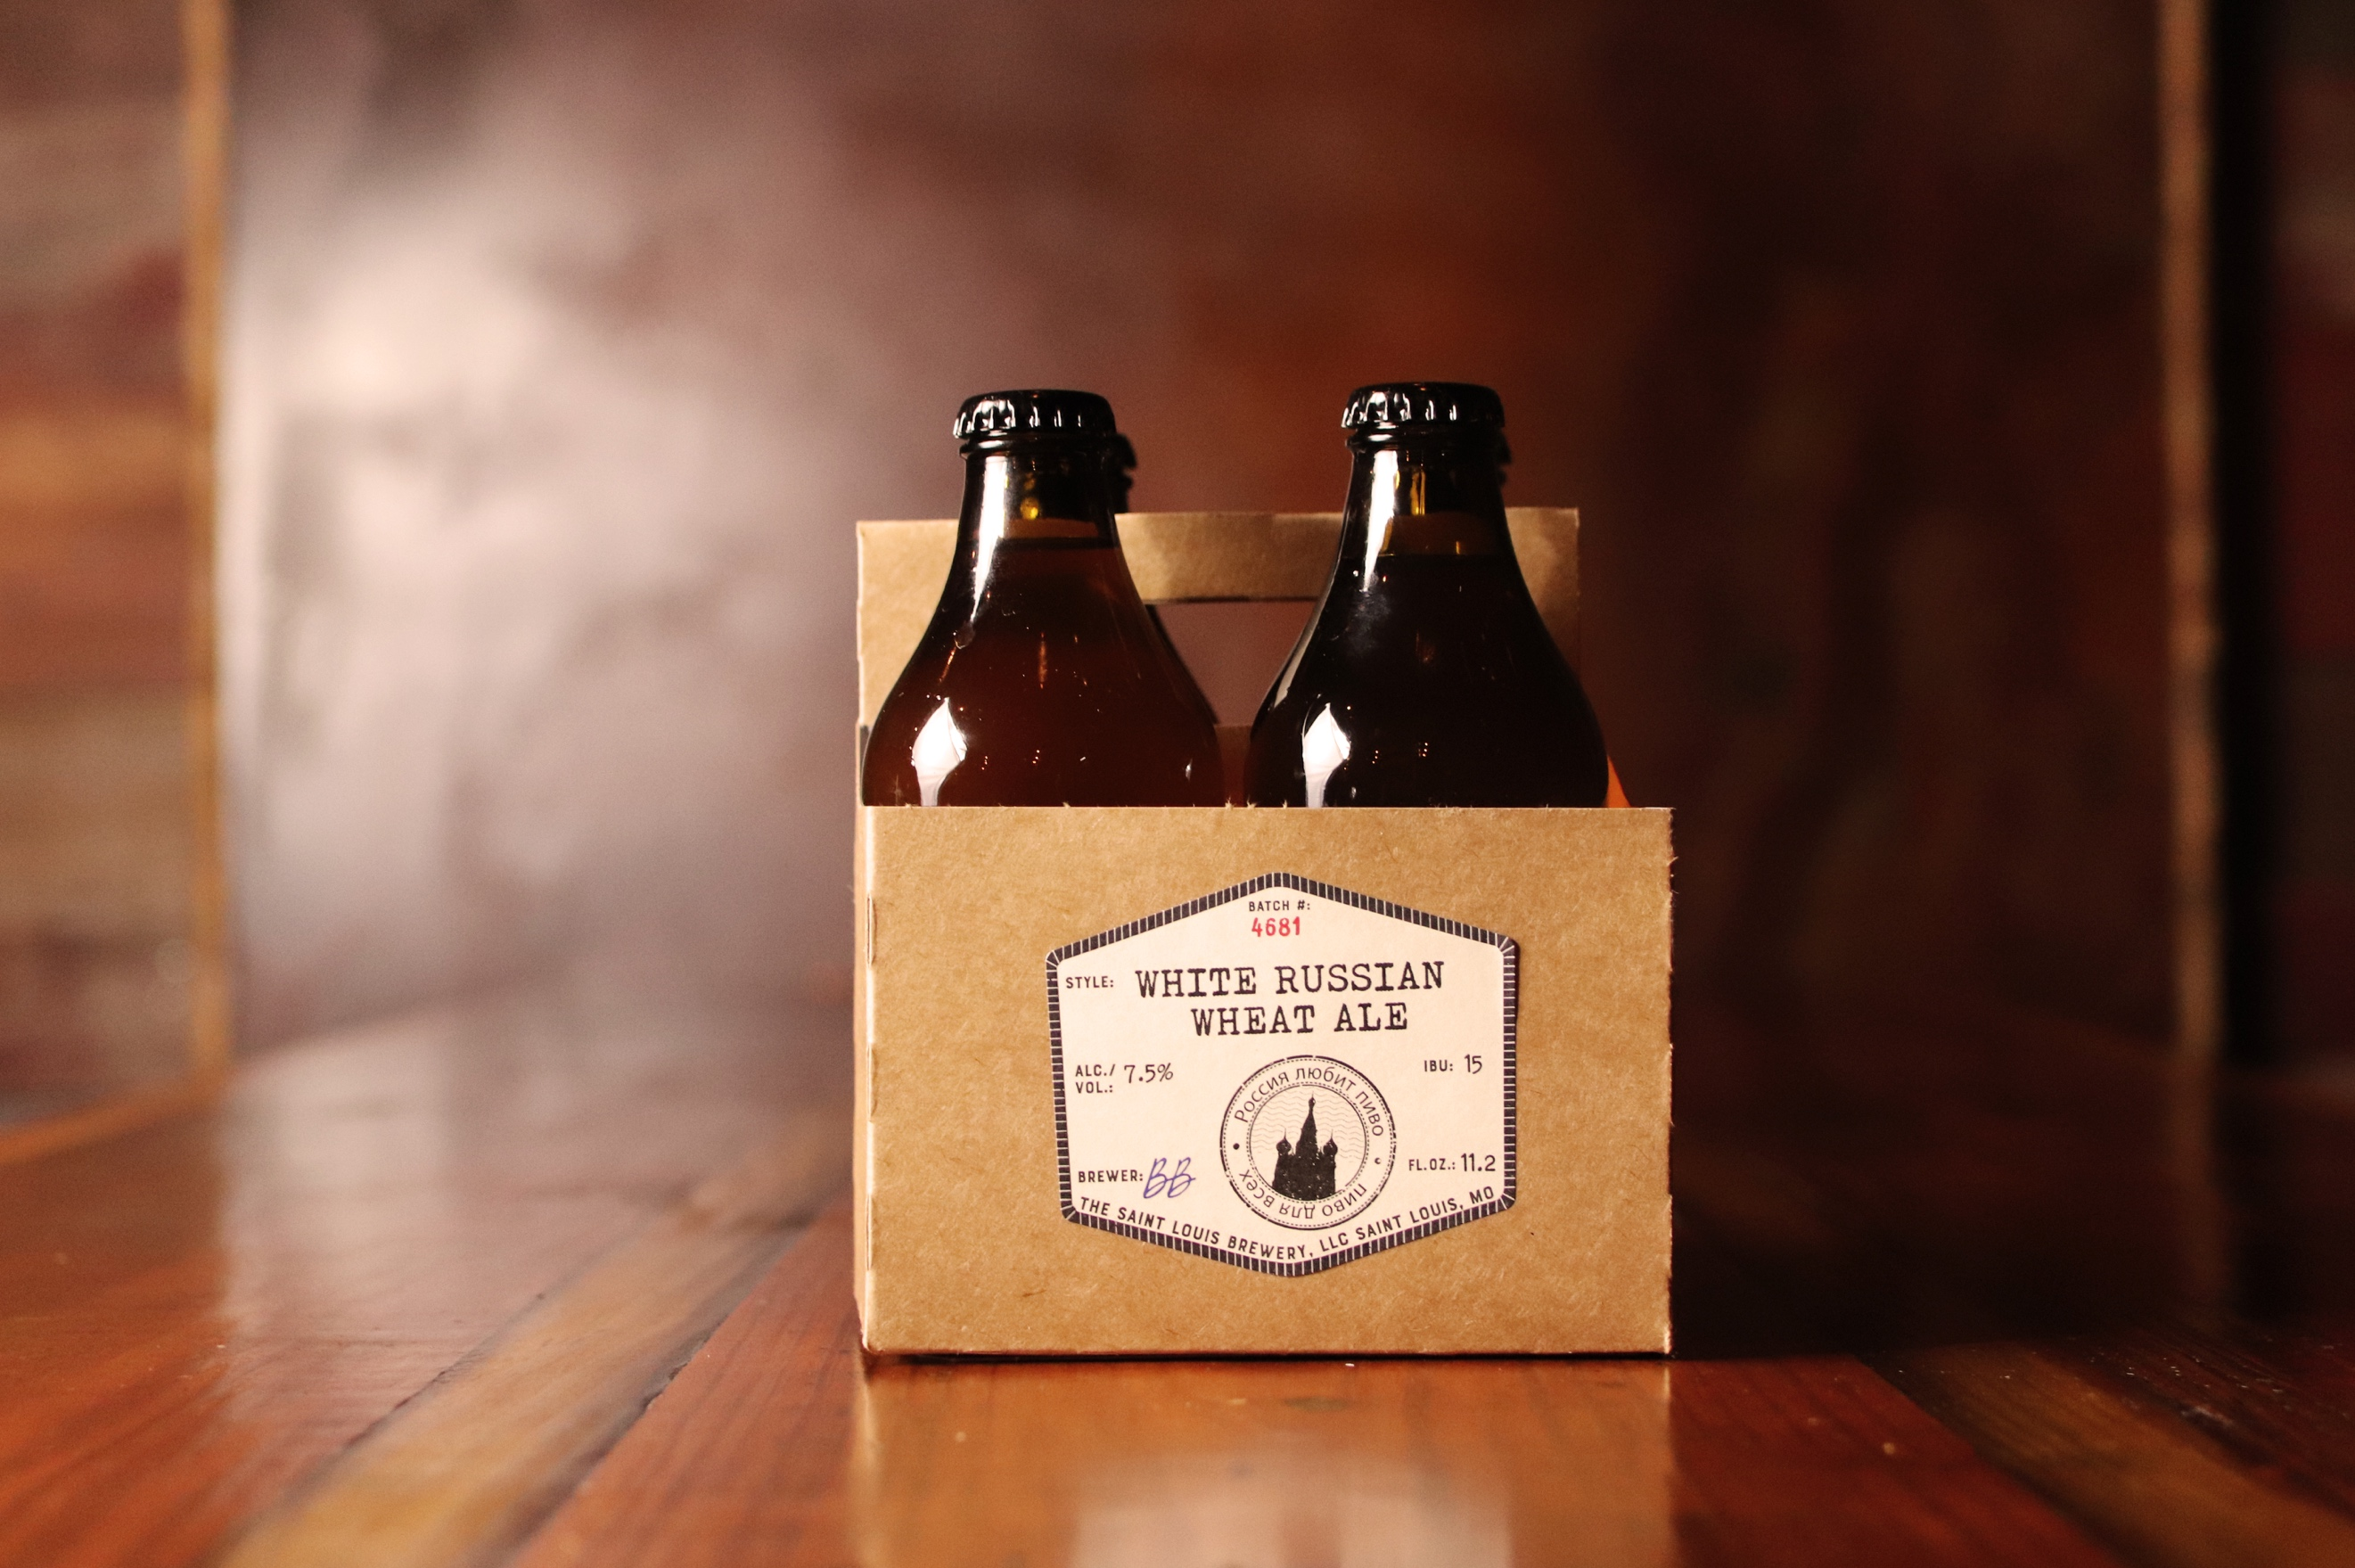 Crafted Malt Beverages Launches White Russian Ale With St. Louis Crafted Cocktails